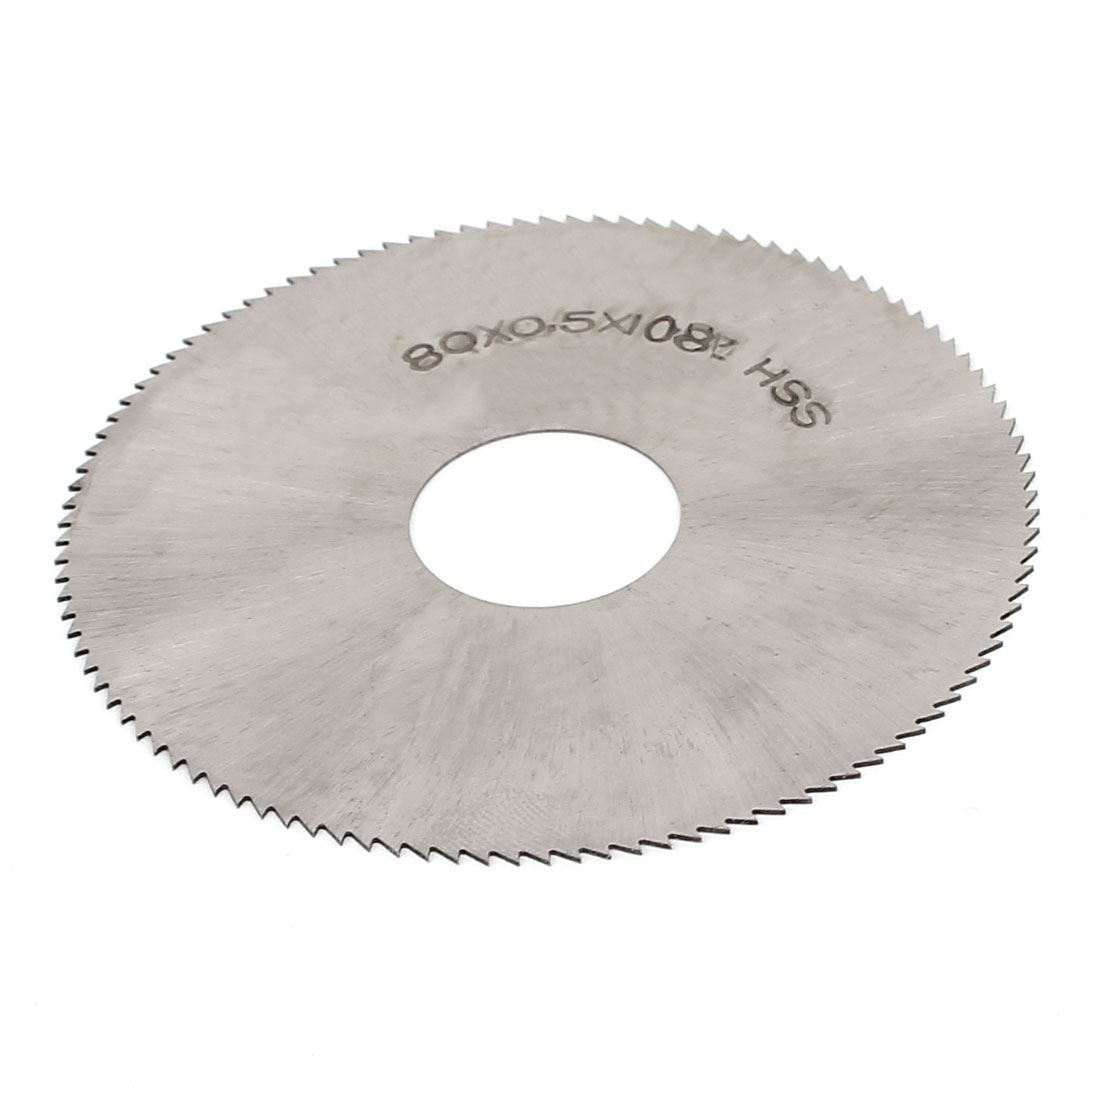 HSS 80mm x 0.5mm x 22mm 108T Teeth Round Cutting Disc Slitting Saw Cutter